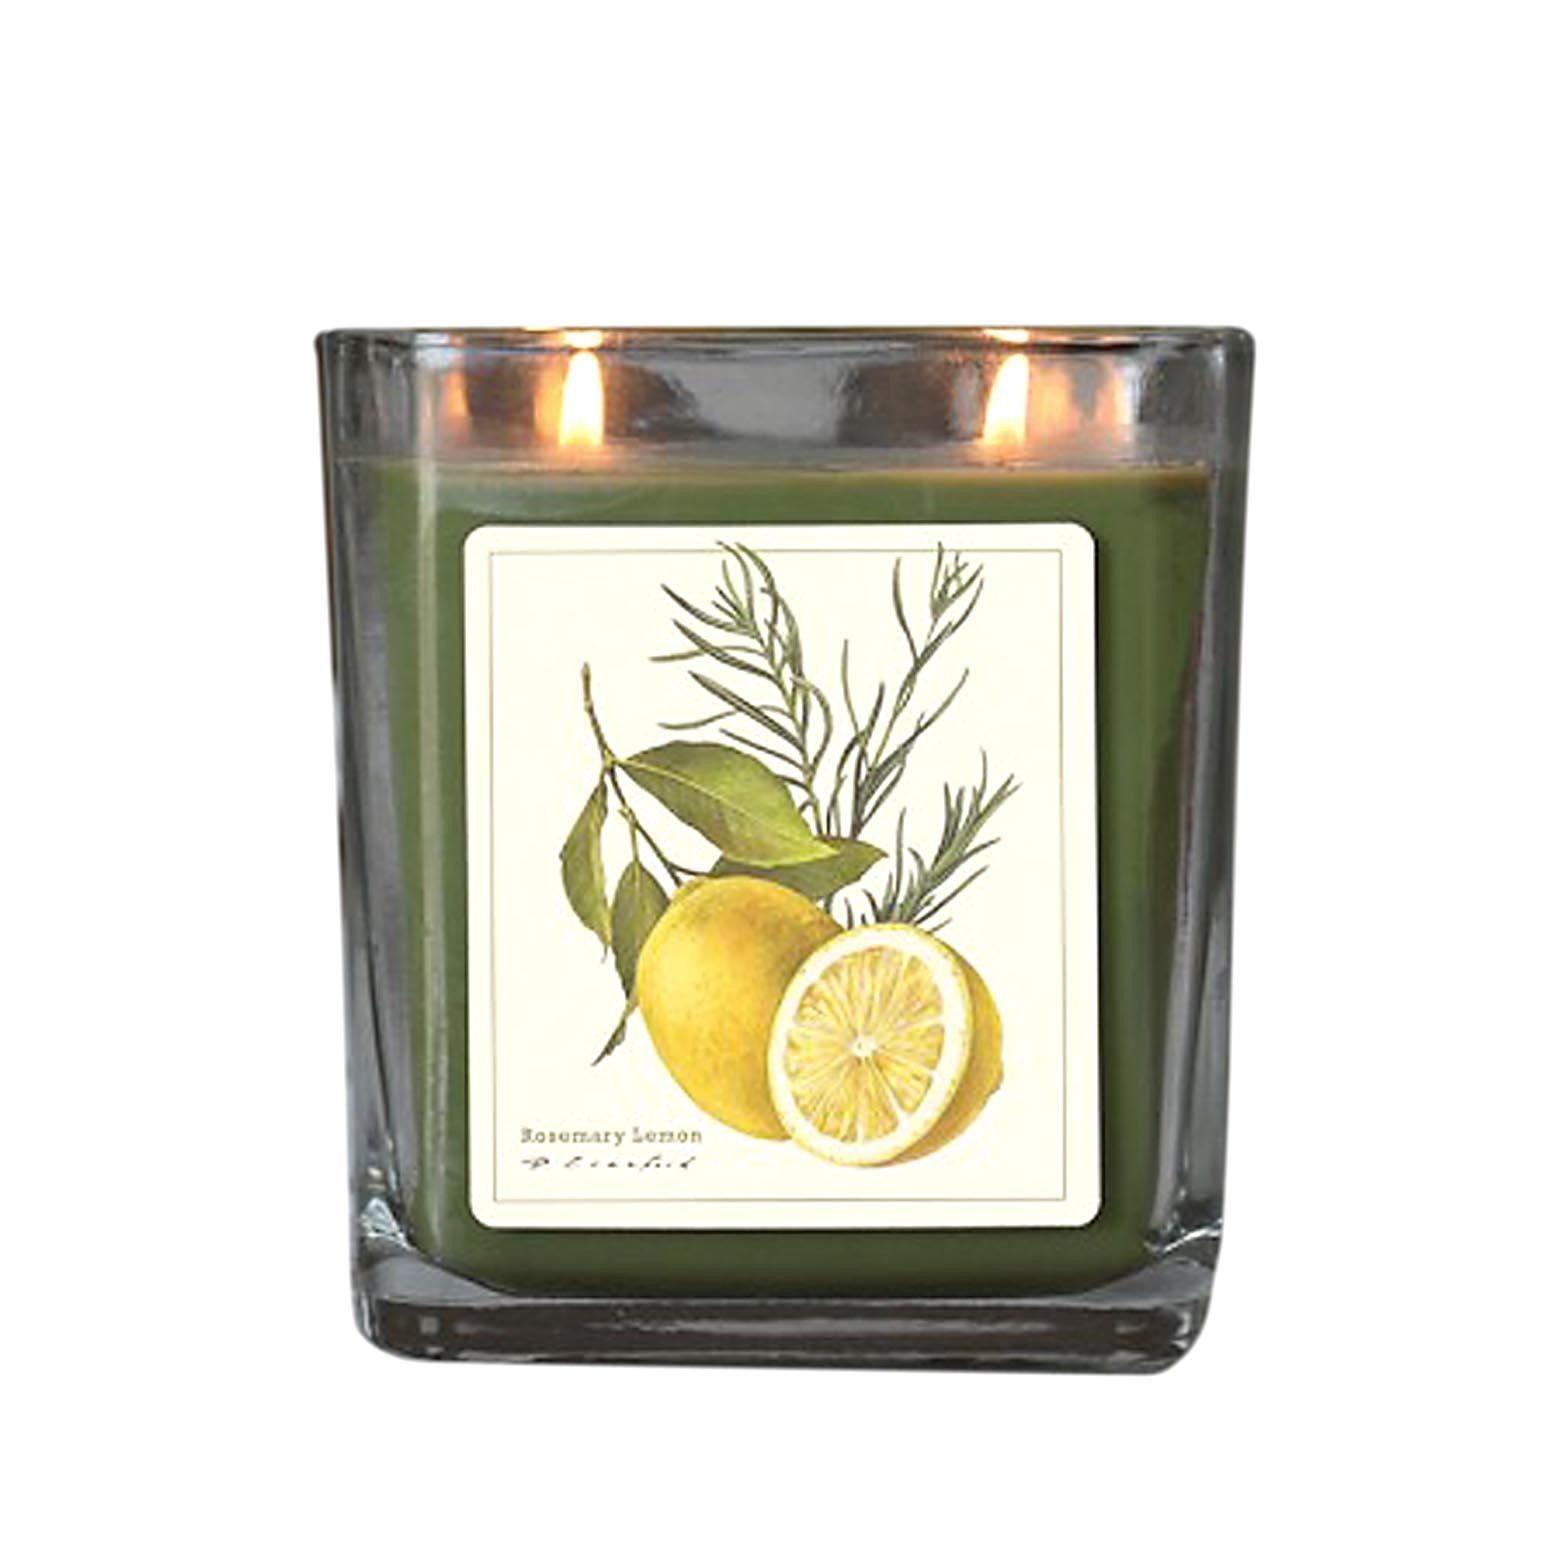 Rosemary Lemon  Hand Poured Verdure Gift Boxed Soy Candle USA made